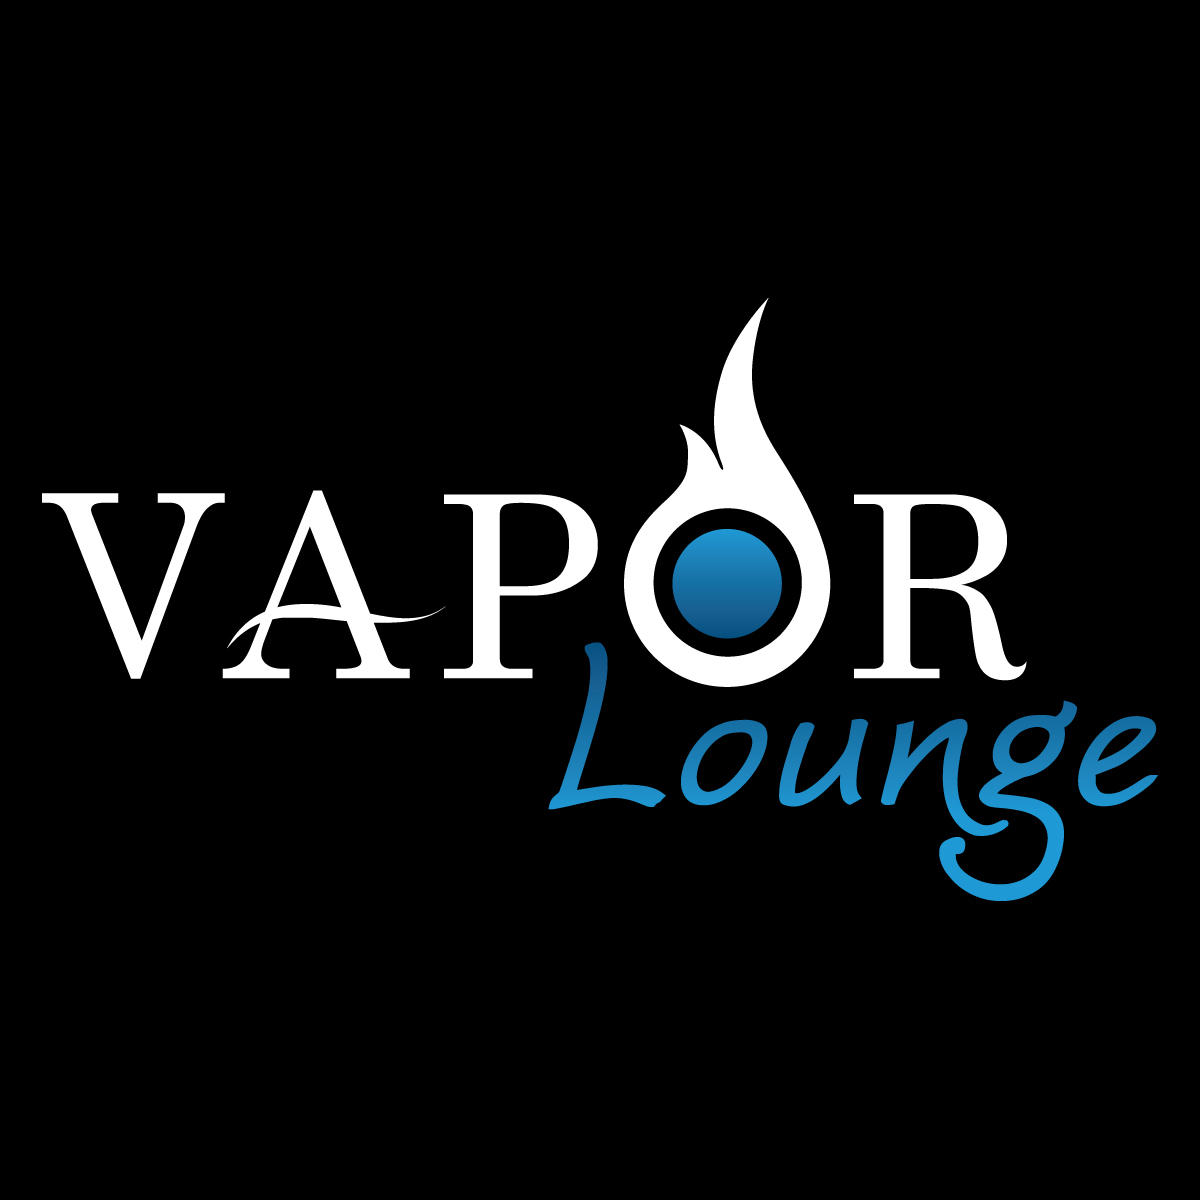 Vapor Lounge - Post